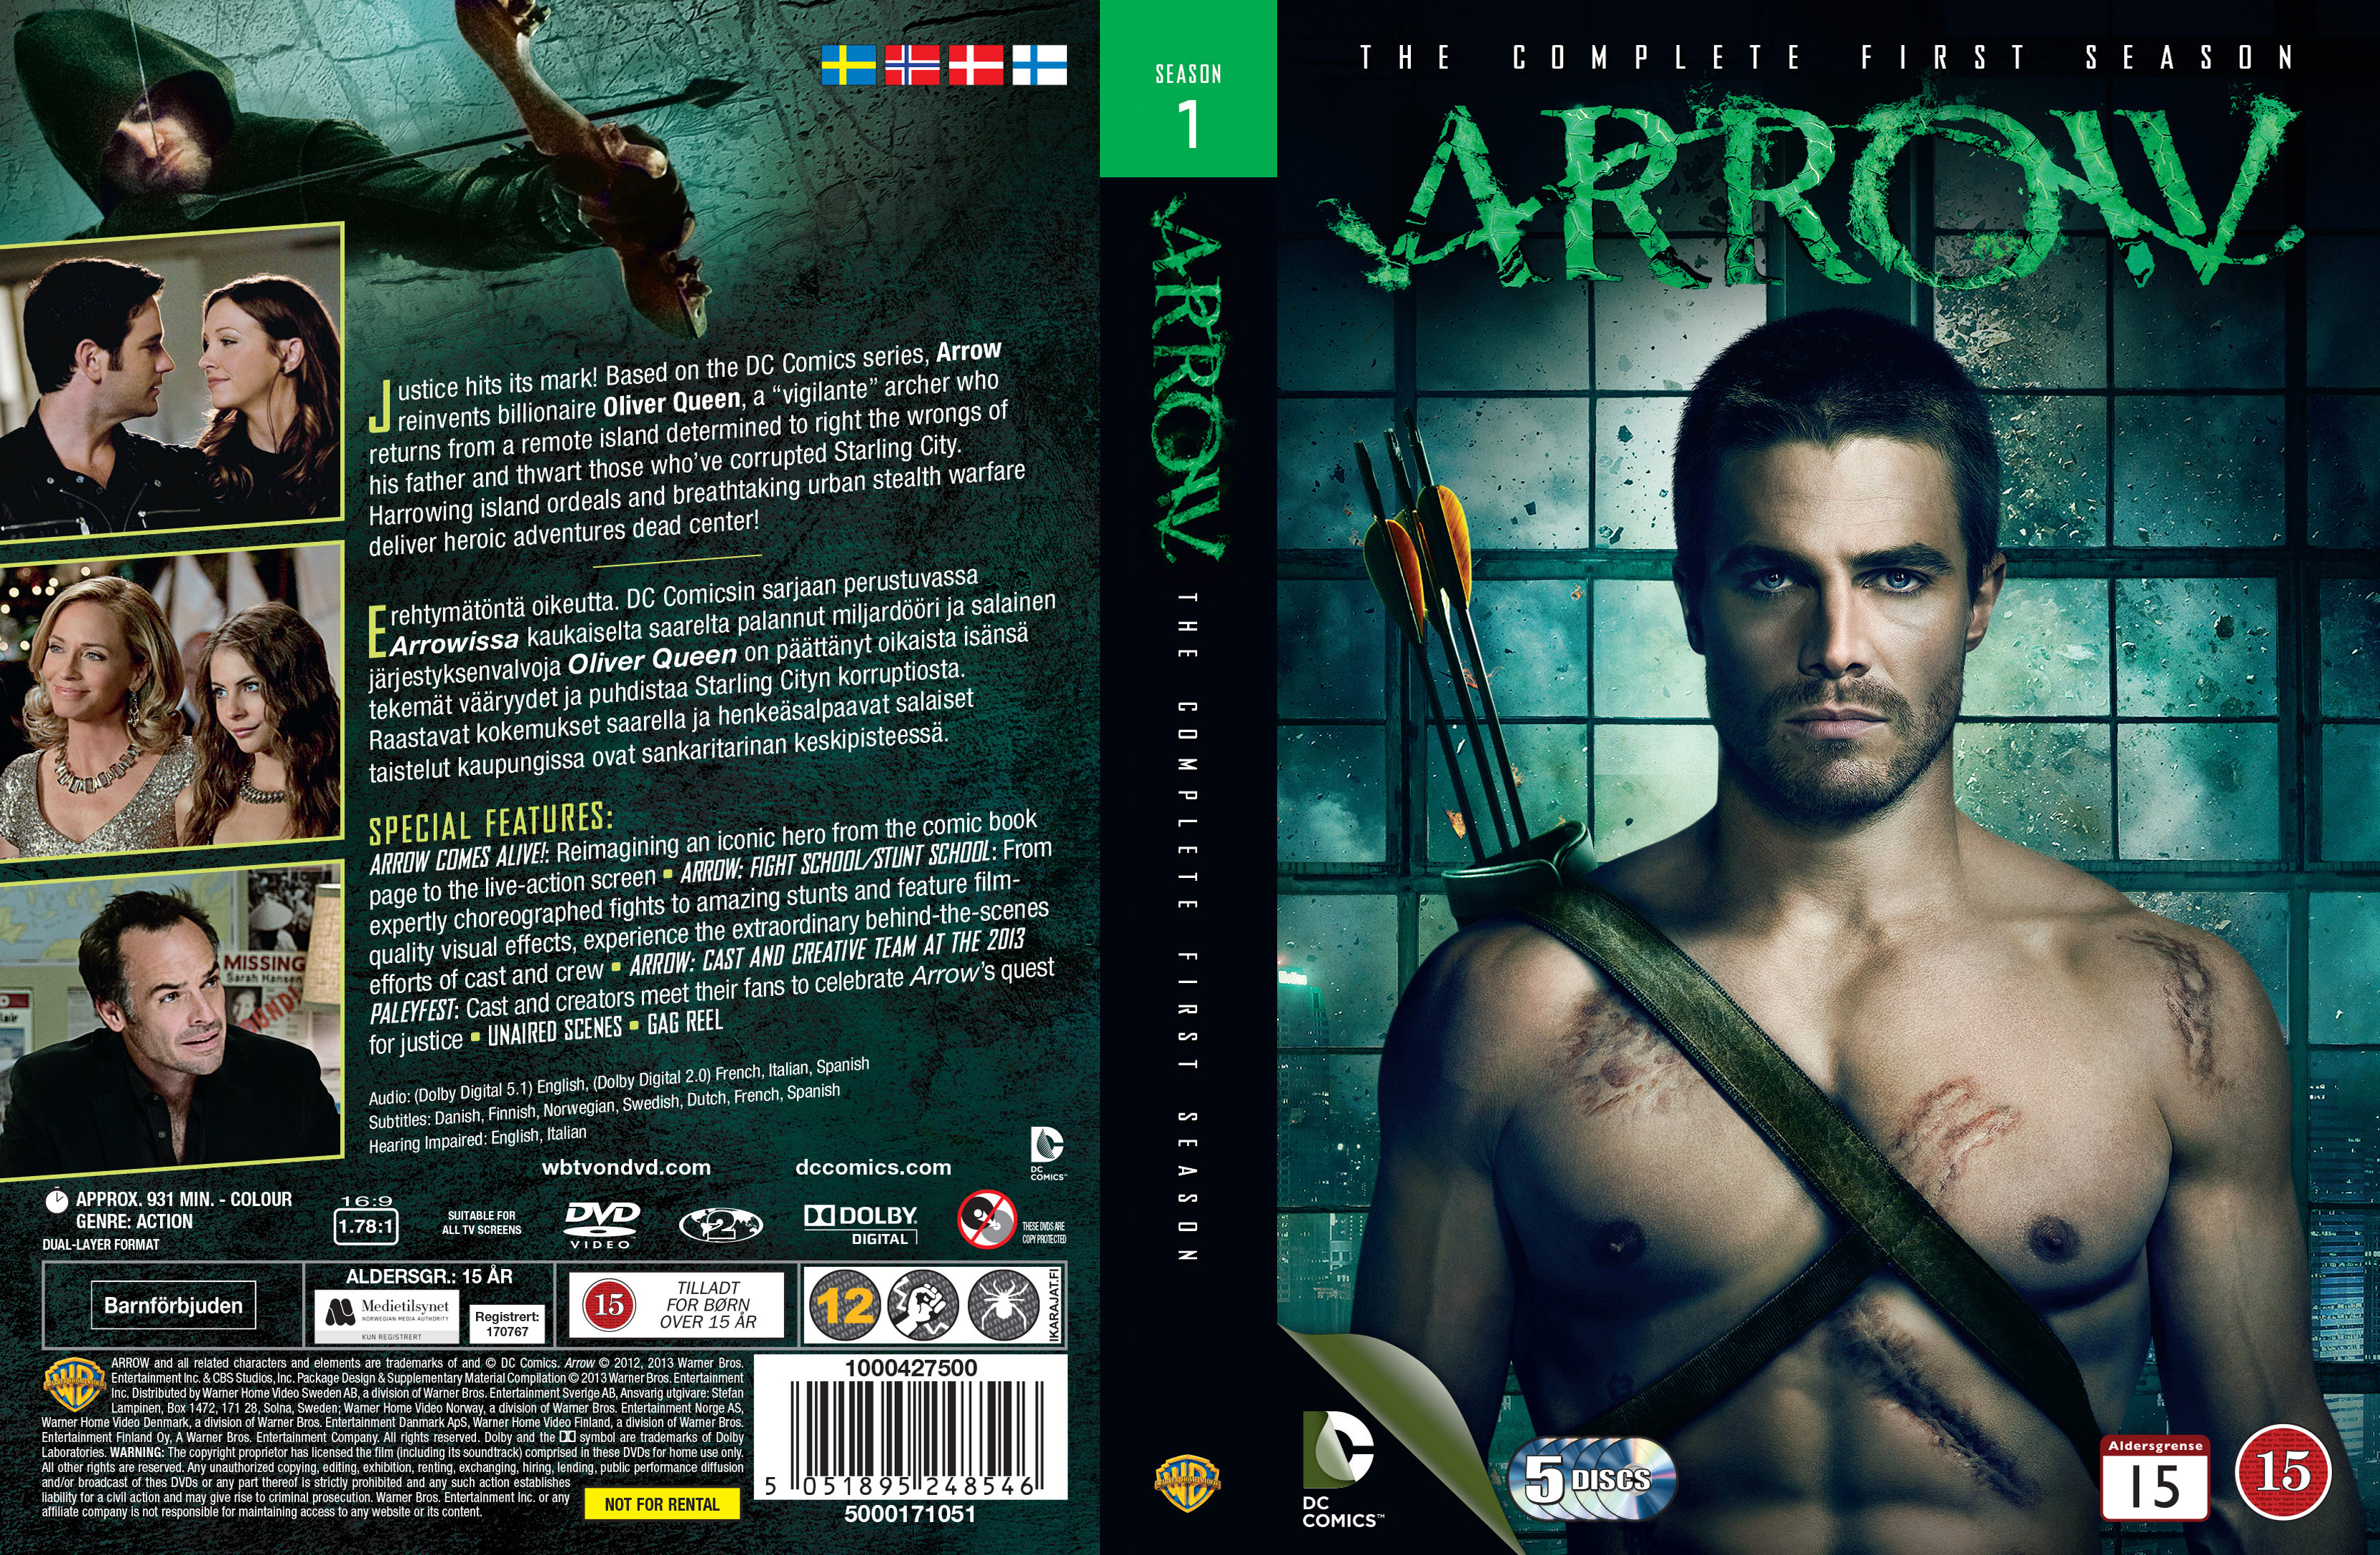 Download film arrow season 1 episode 23 | tabrucondecox.